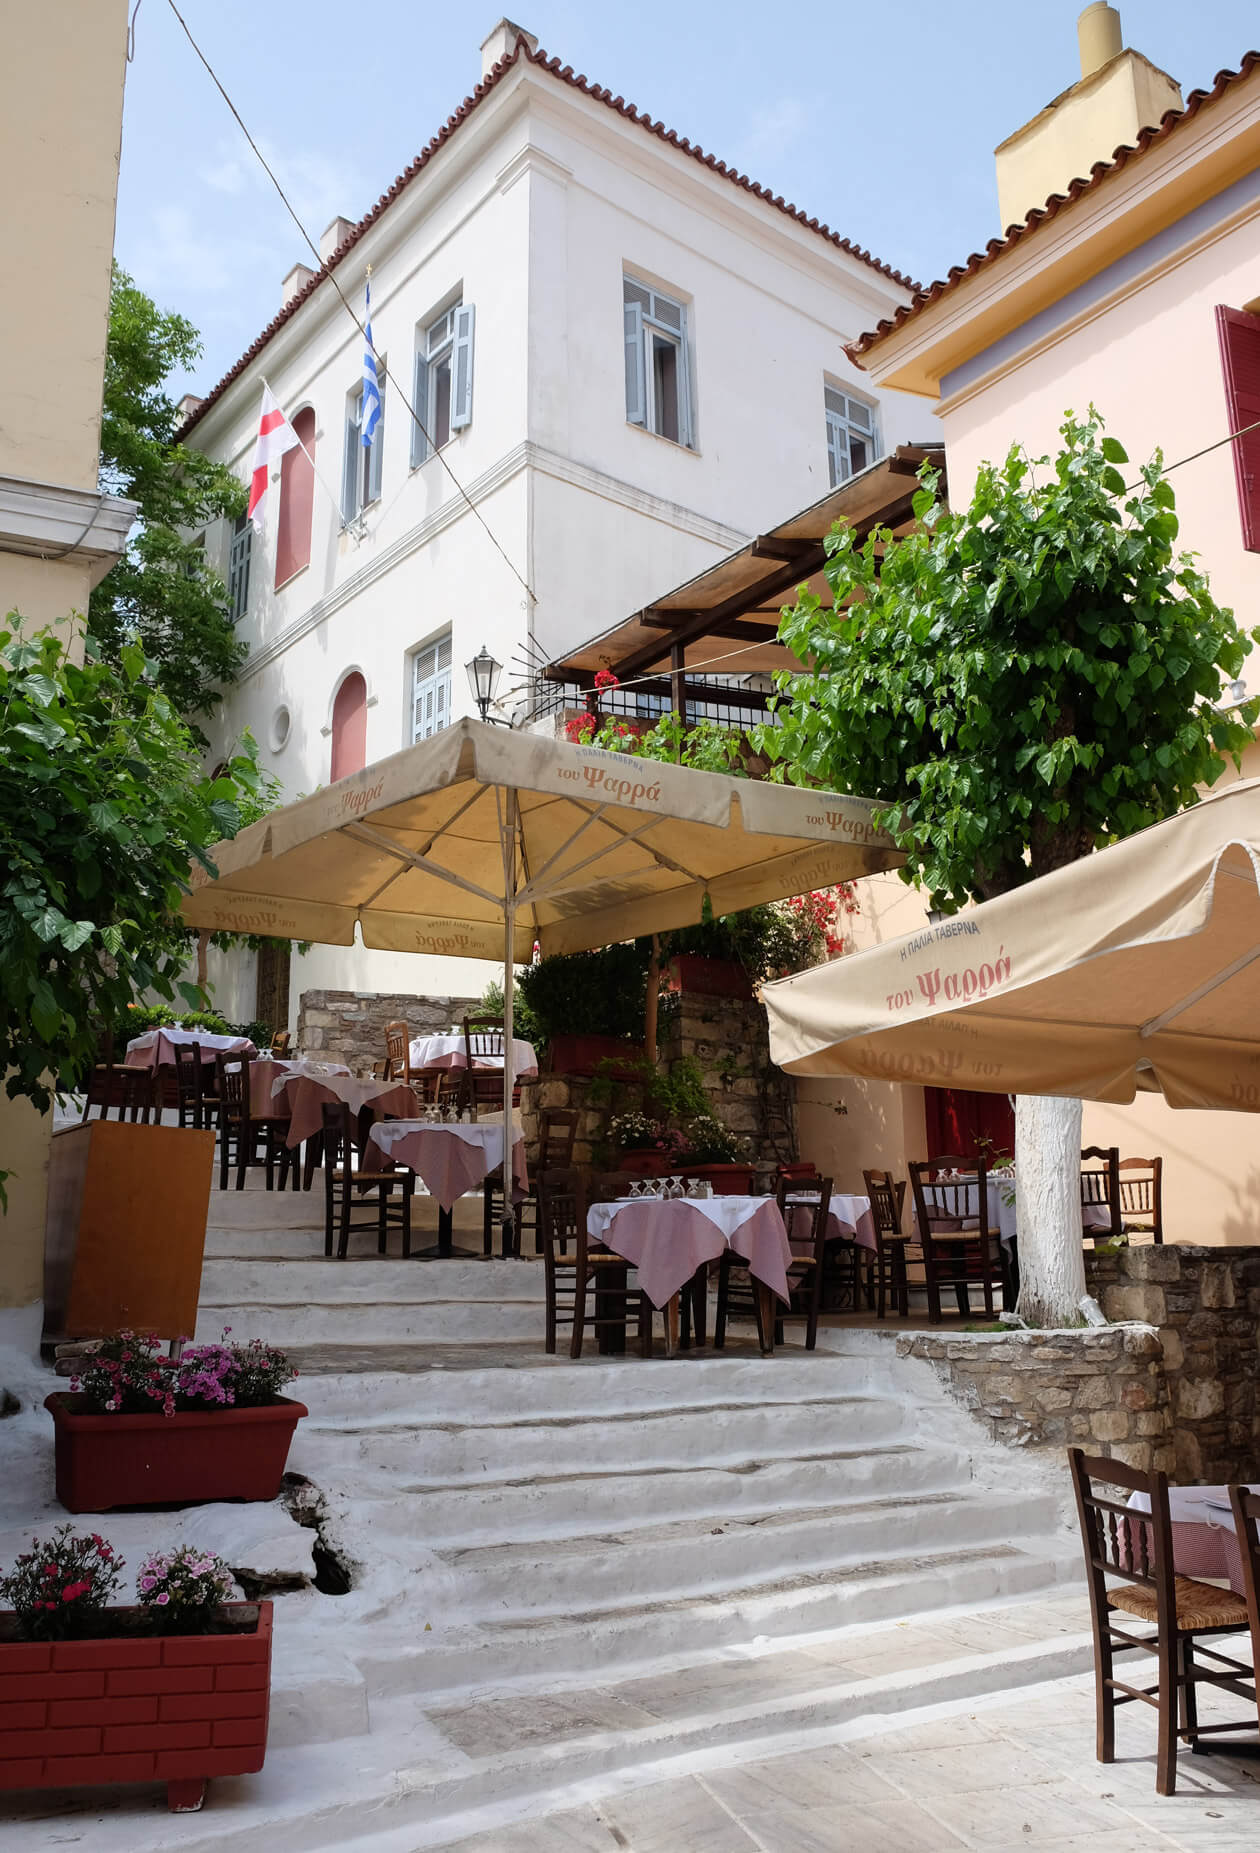 Stairs in the Plaka district